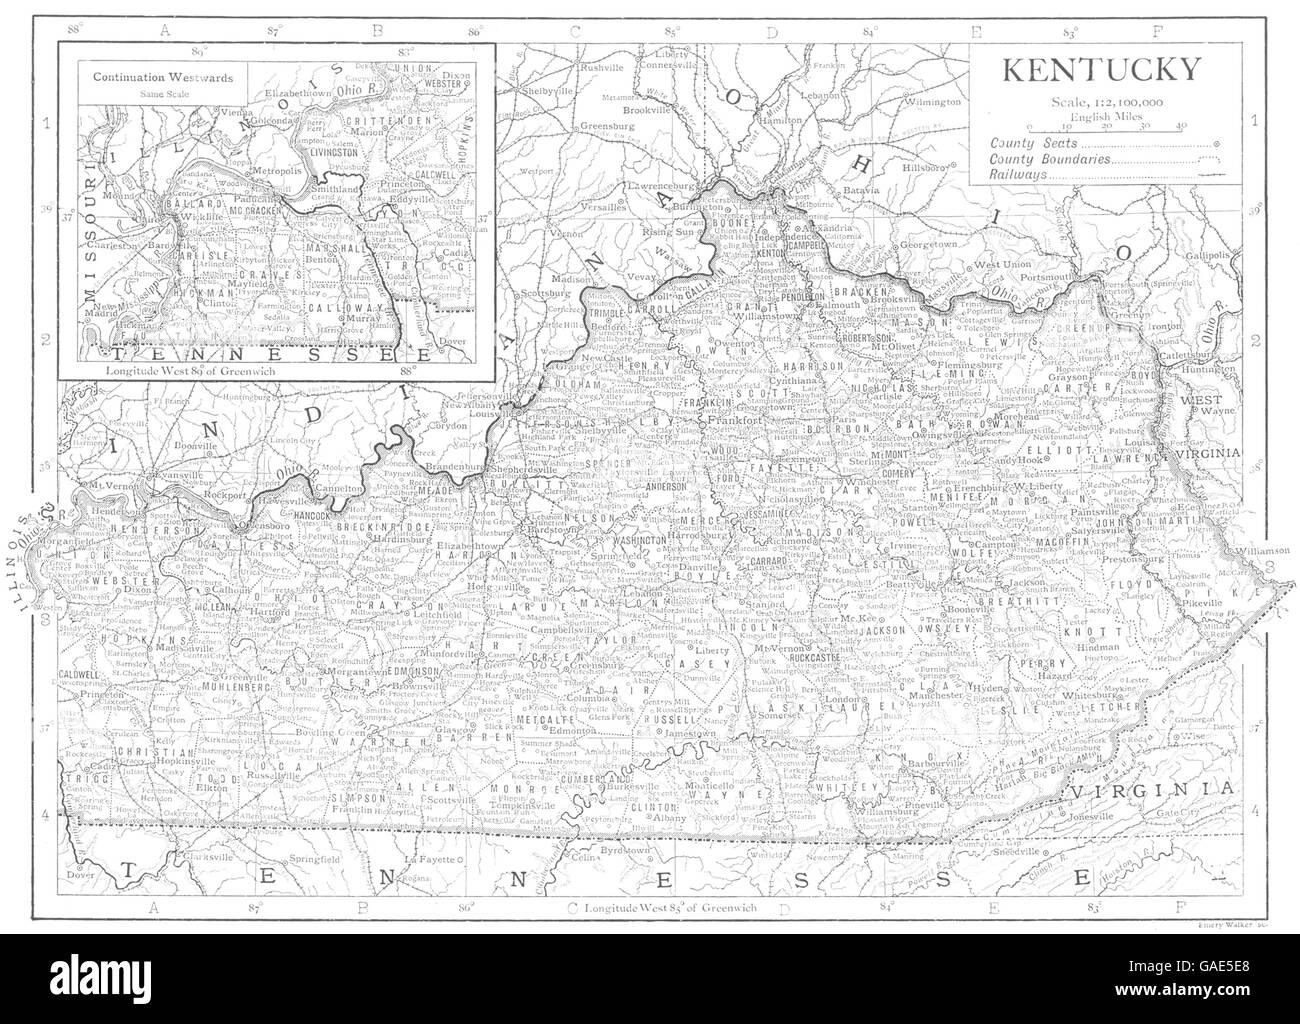 Kentucky State Map With Counties on kentucky zipcodes, midwest state maps with counties, large map of kentucky counties, kentucky county map pdf, print map of kentucky counties, kentucky state capitol map, state of kentucky counties, map of northern kentucky counties, kentucky state map detailed, indiana state map by counties, kentucky county maps by worksheets, kentucky county map ky, indiana and illinois counties, kentucky county seat map, kentucky tennessee airports, kentucky state travel map, kentucky state fish, kentucky county map of counties, kentucky state map of ky, blank map of kentucky counties,